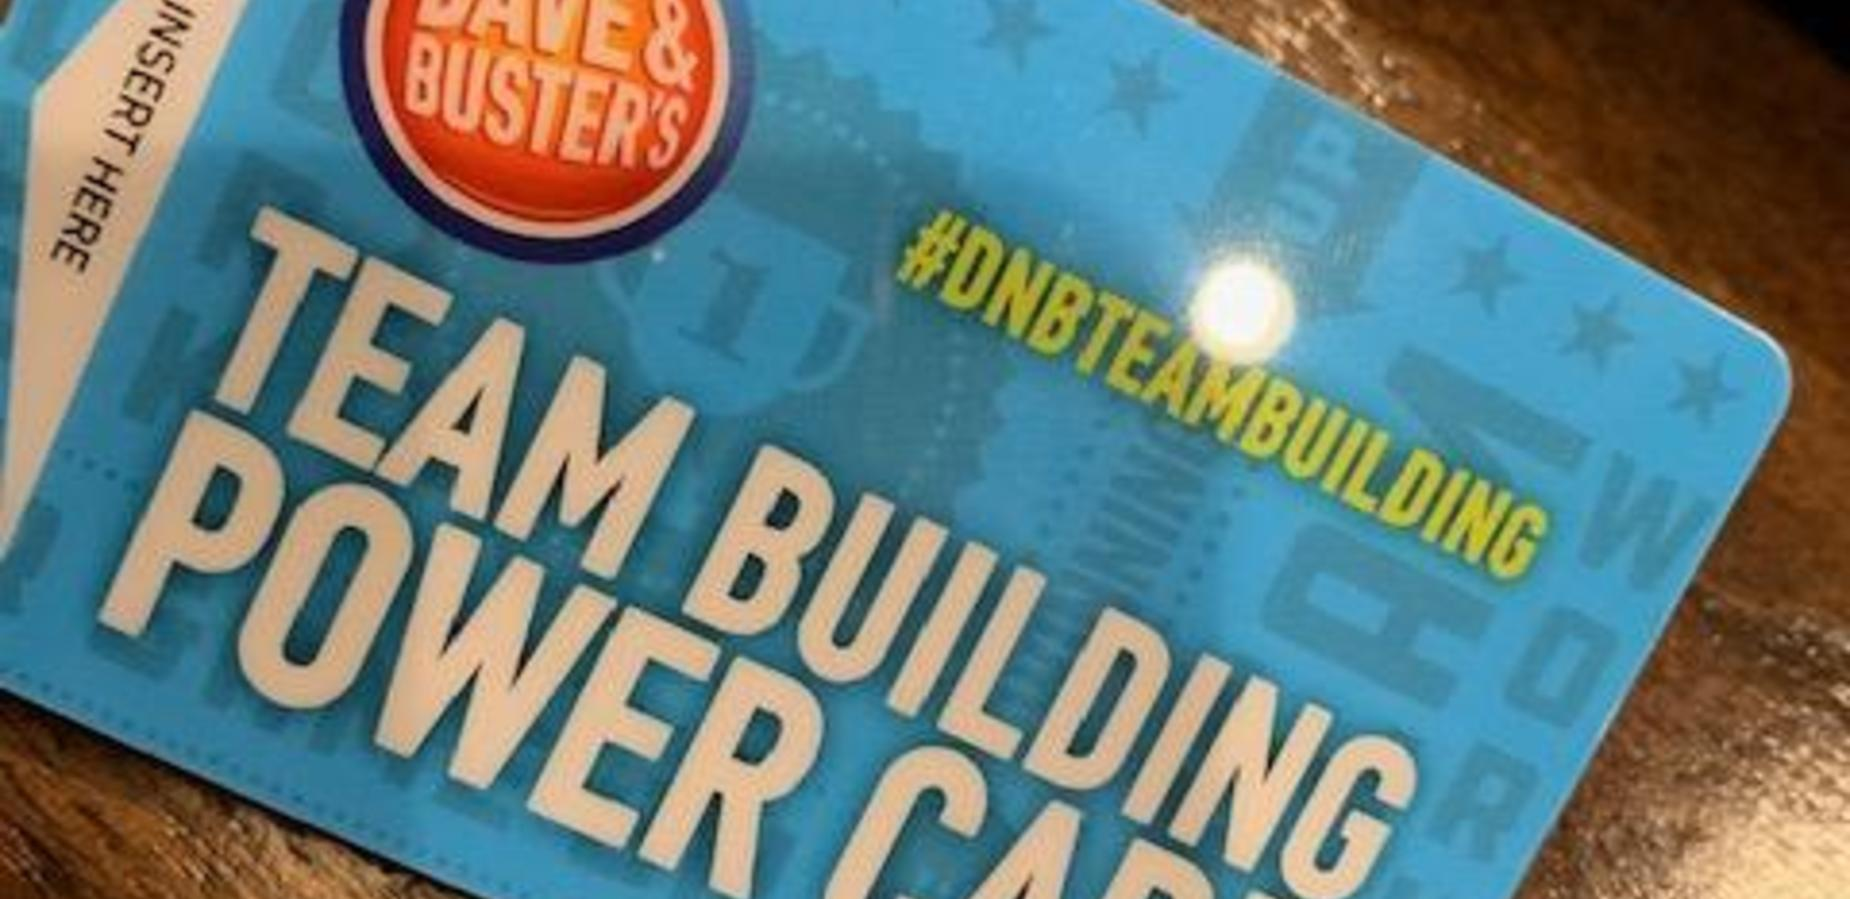 Dave & Busters's Team Building Card